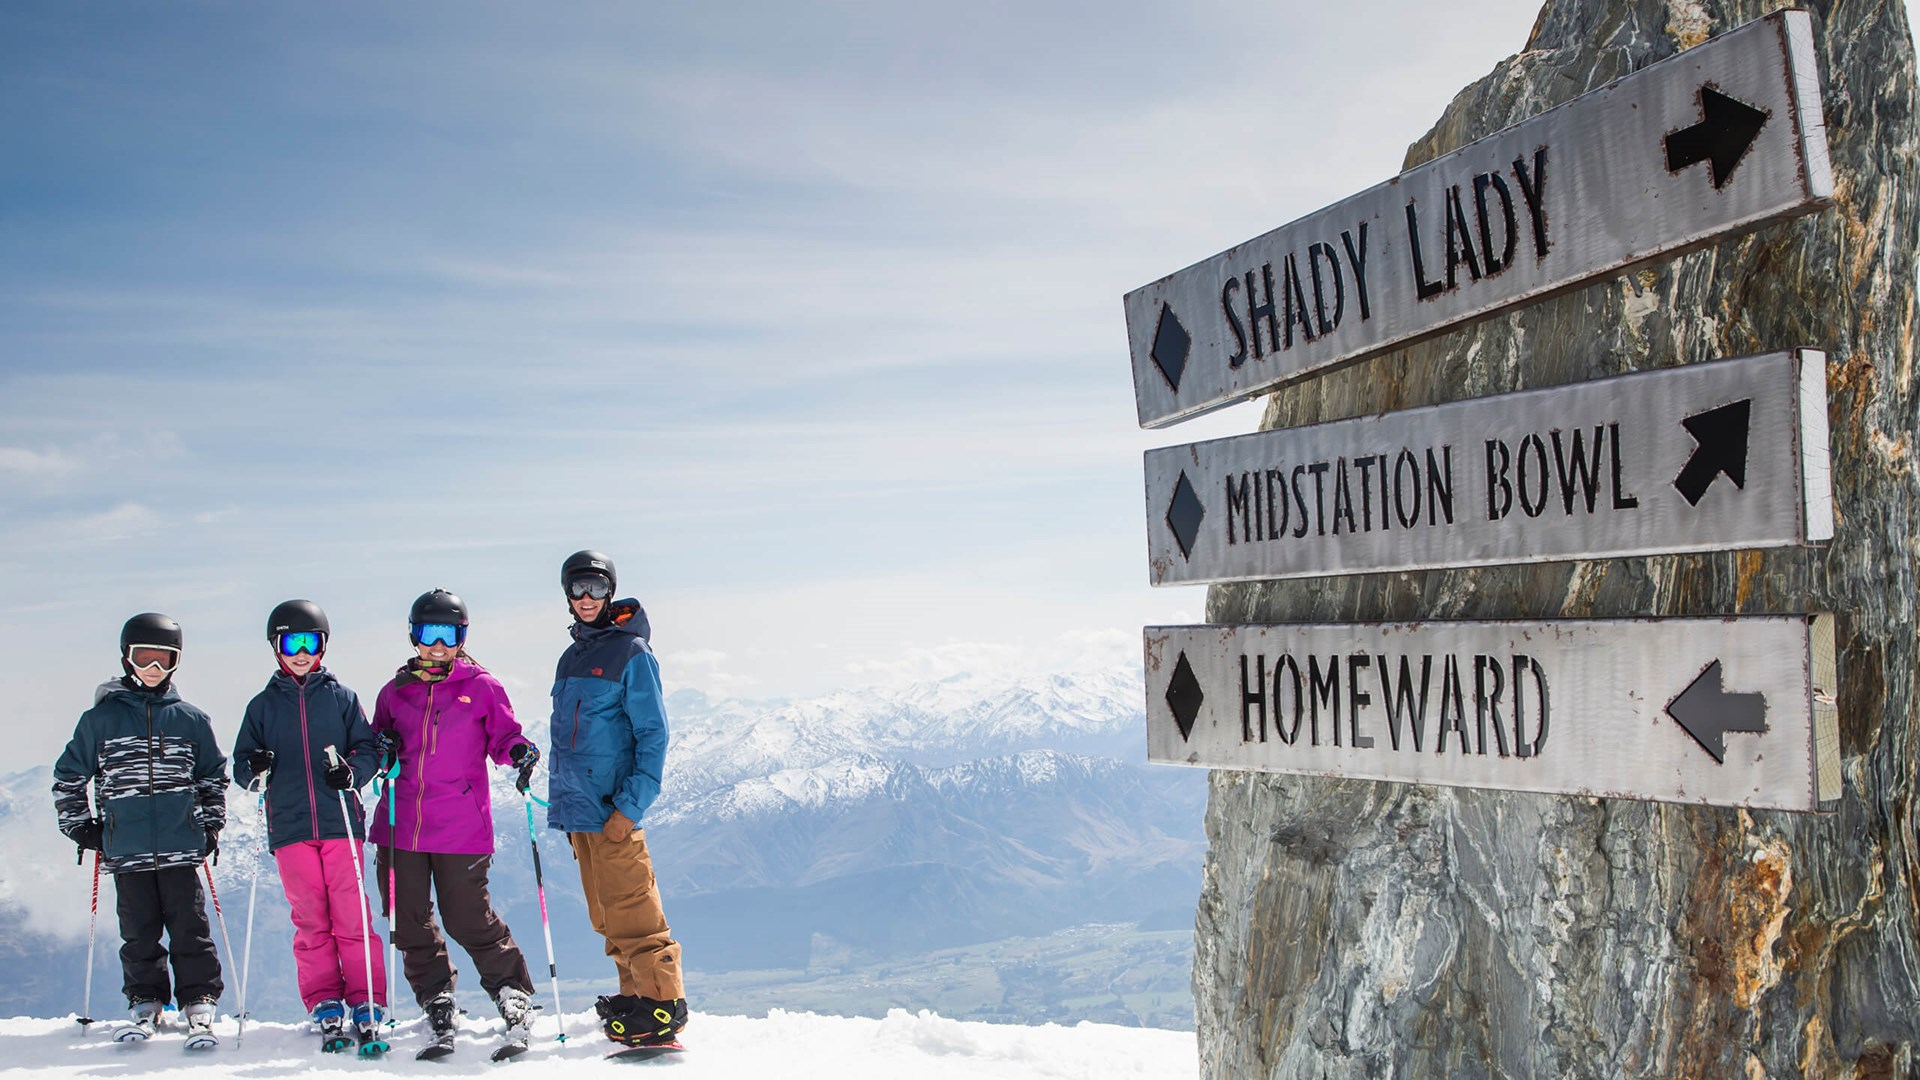 Family Skiing at The Remarkables